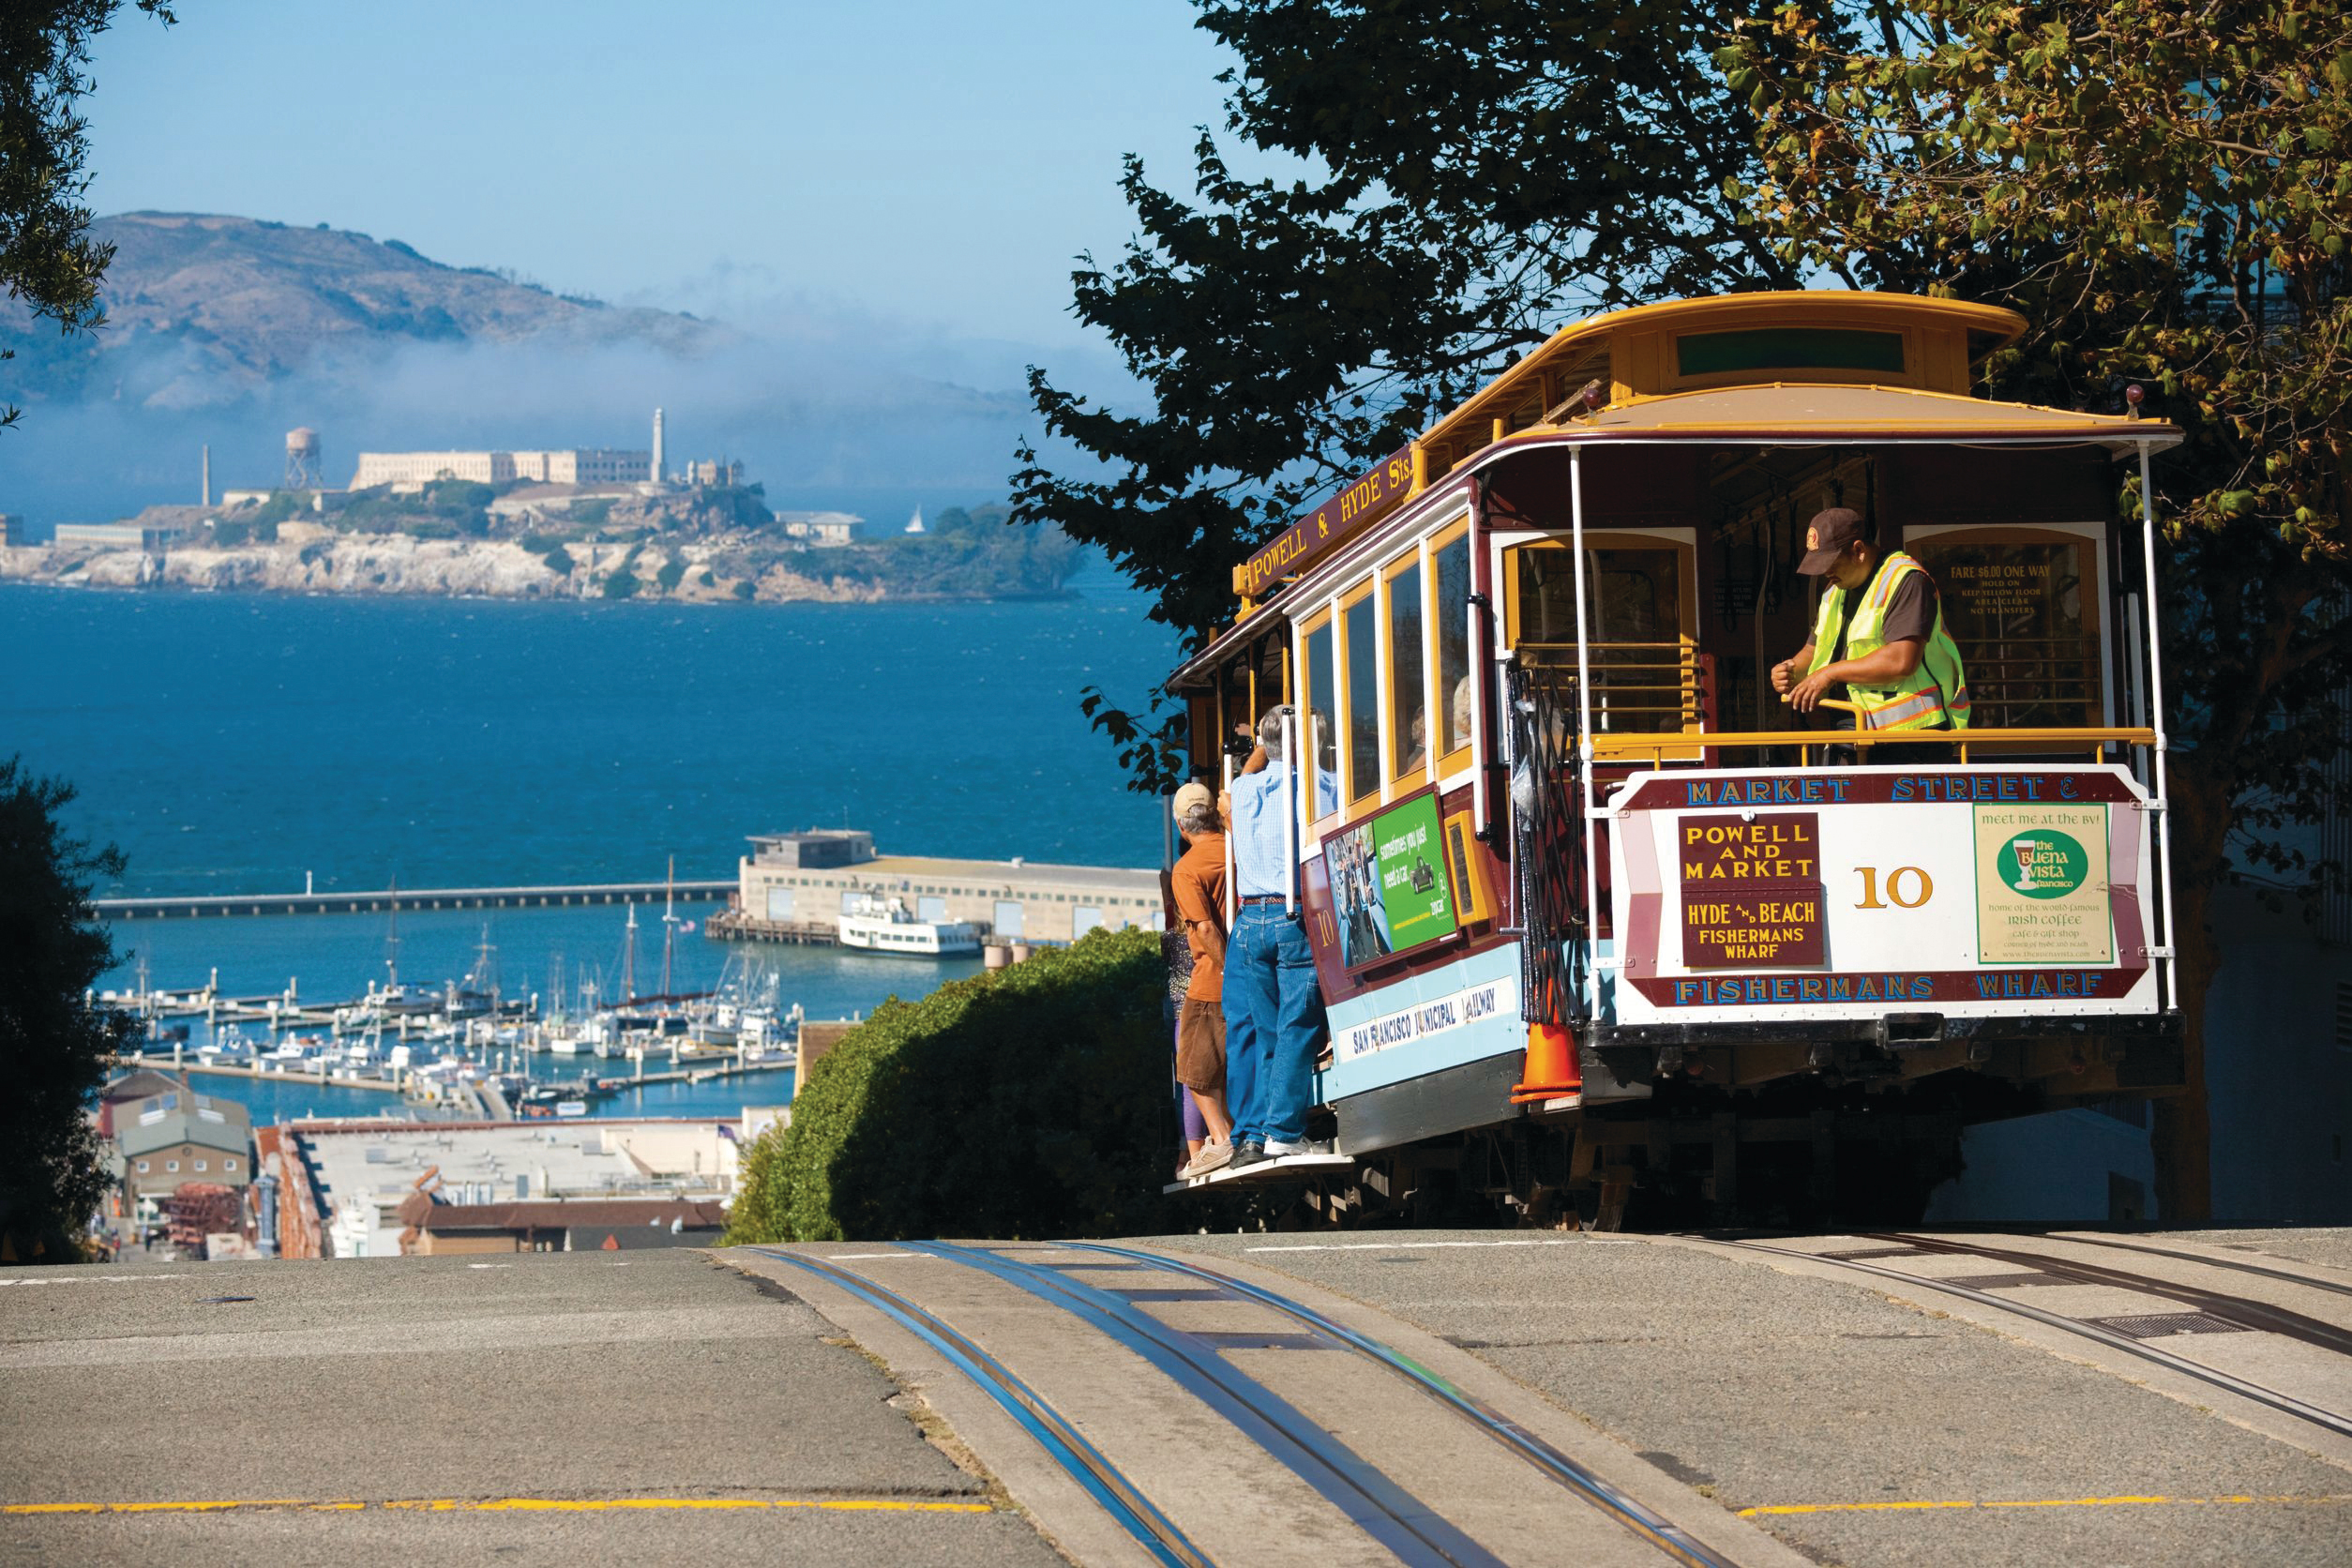 San Francisco Cable Car Accidents Costs Millions